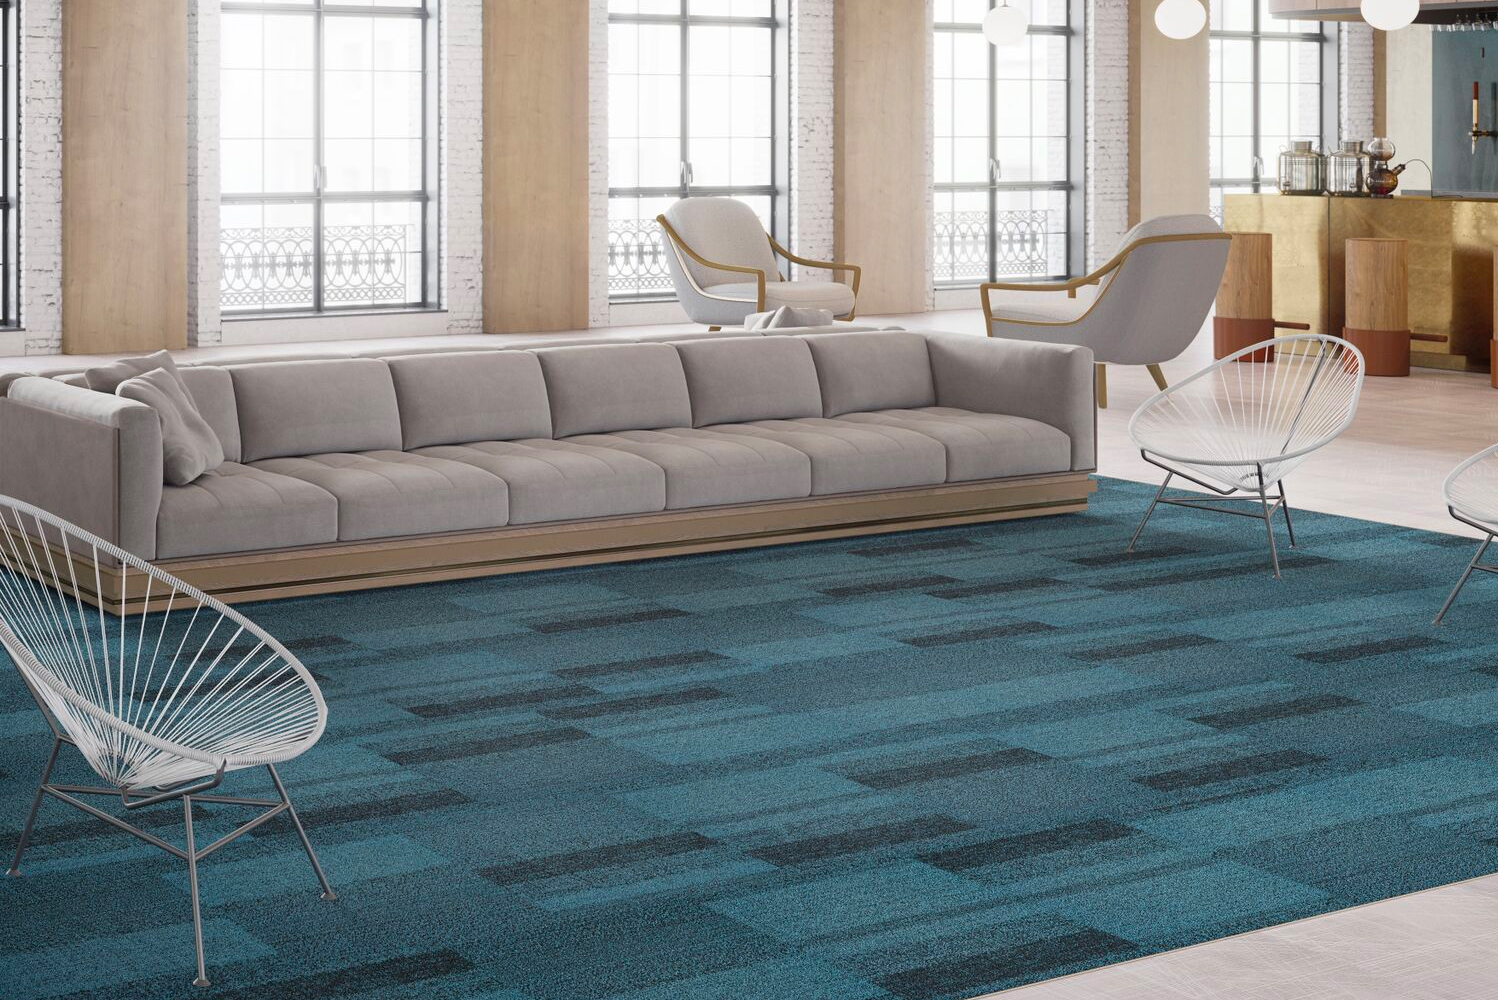 Tarkett launched new flooring products, Braided & Meshwork, that work in a variety of commercial spaces.